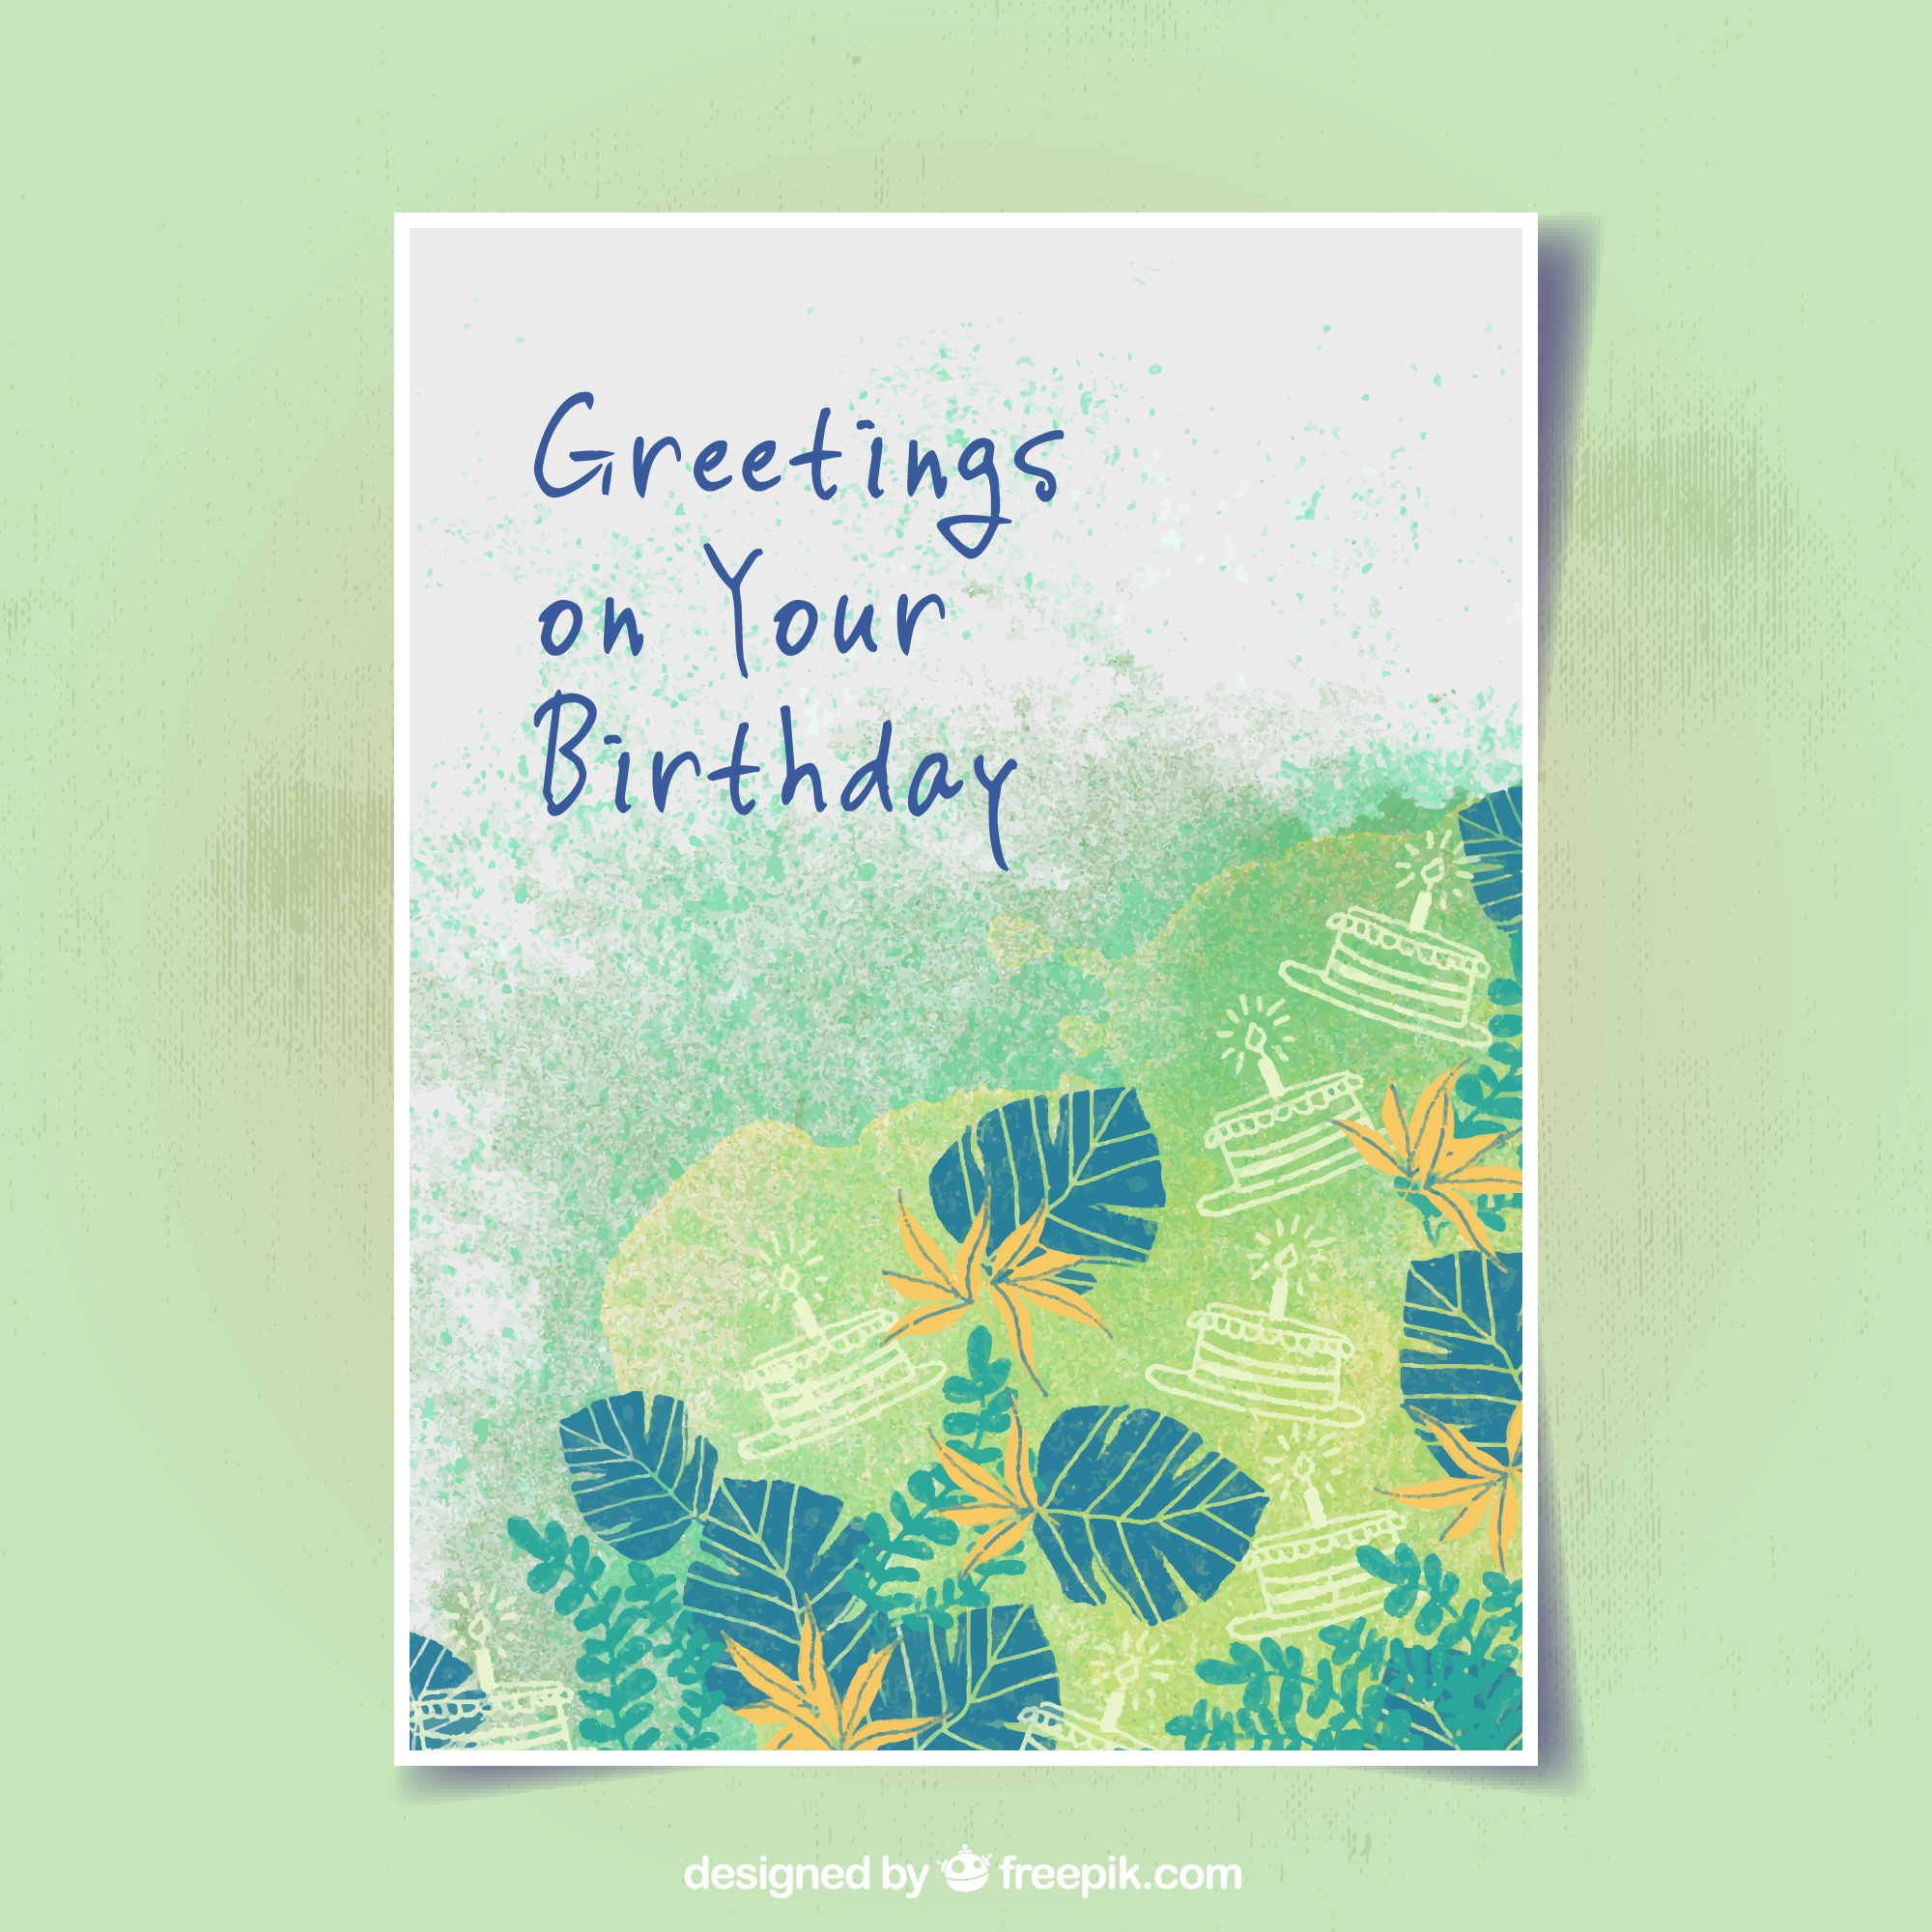 Birthday greeting card with vegetation